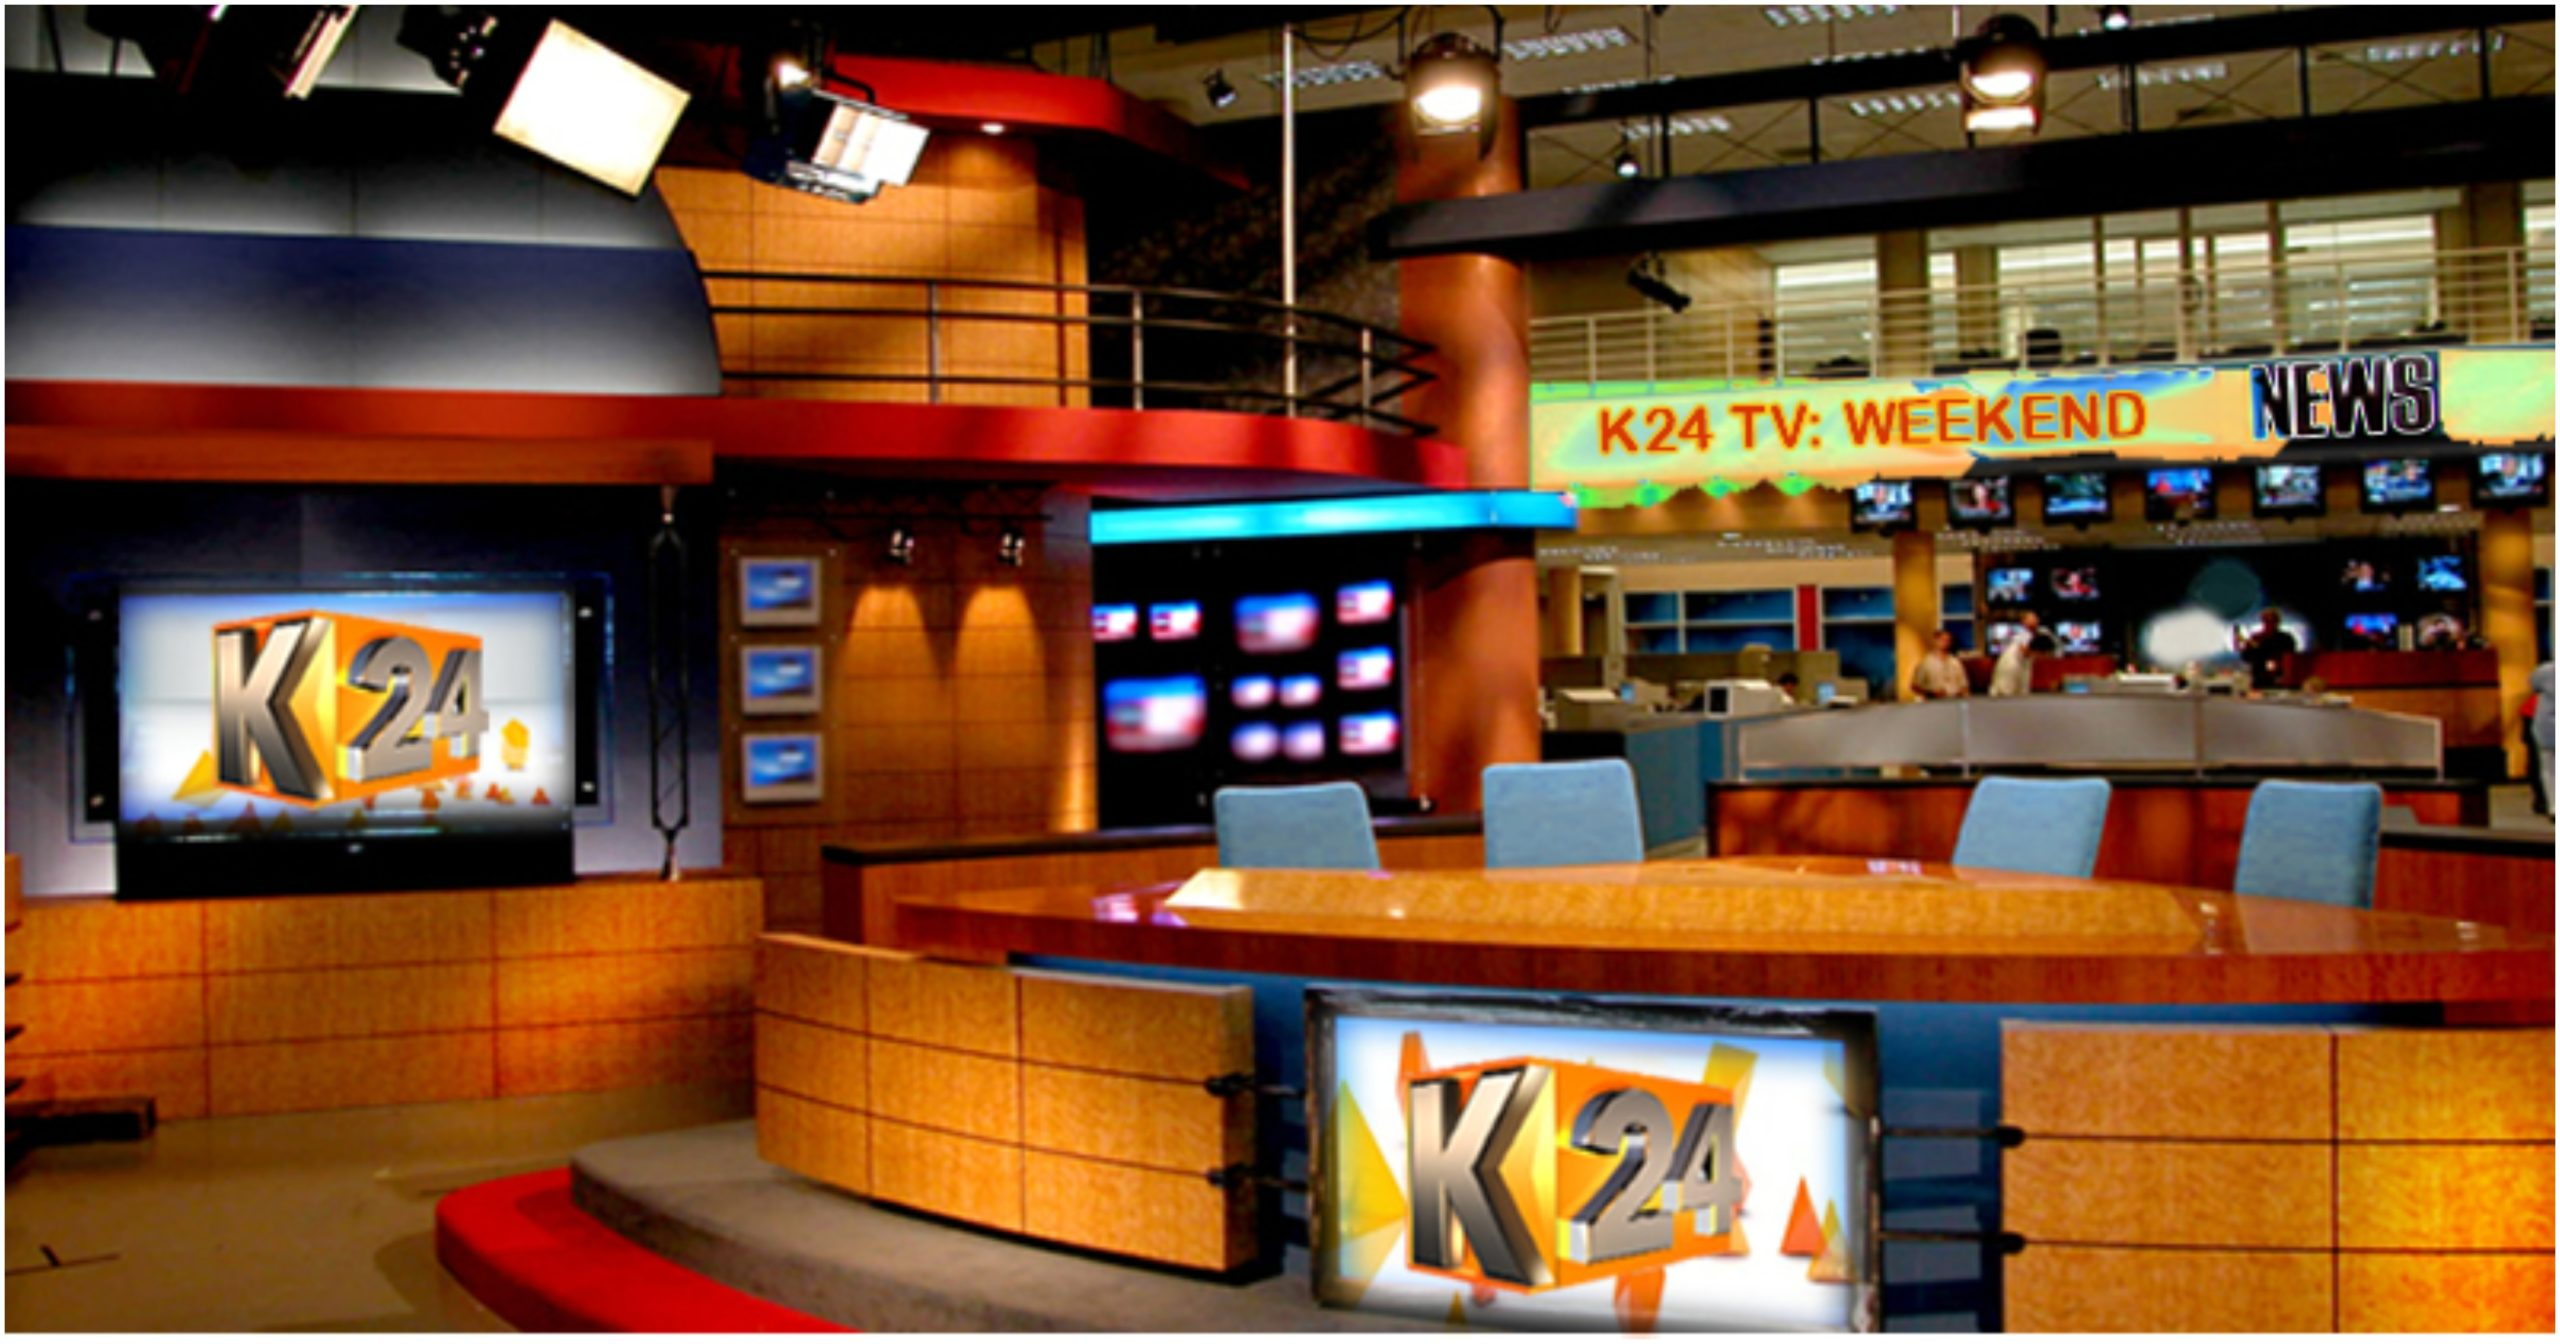 K24 TV reportedly lays off last-standing news journalist (Details)